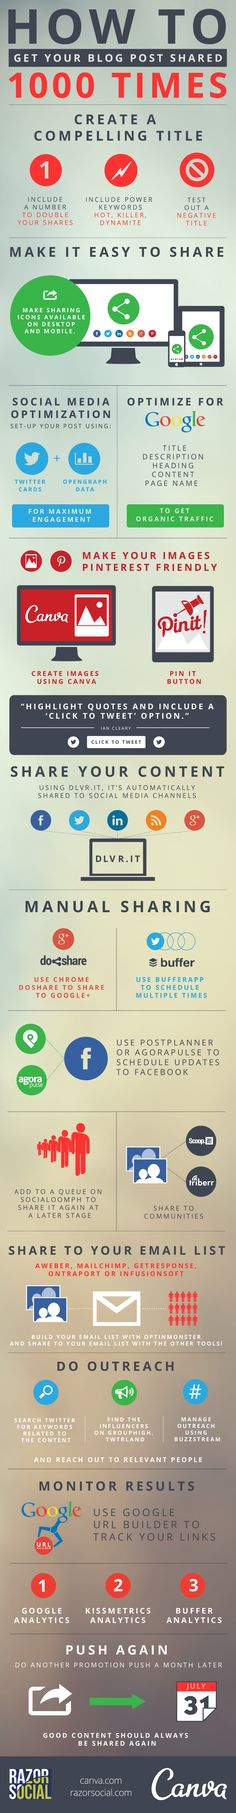 How to Get Your Blog Post Shared 1000 Times #Infographic #blogpost